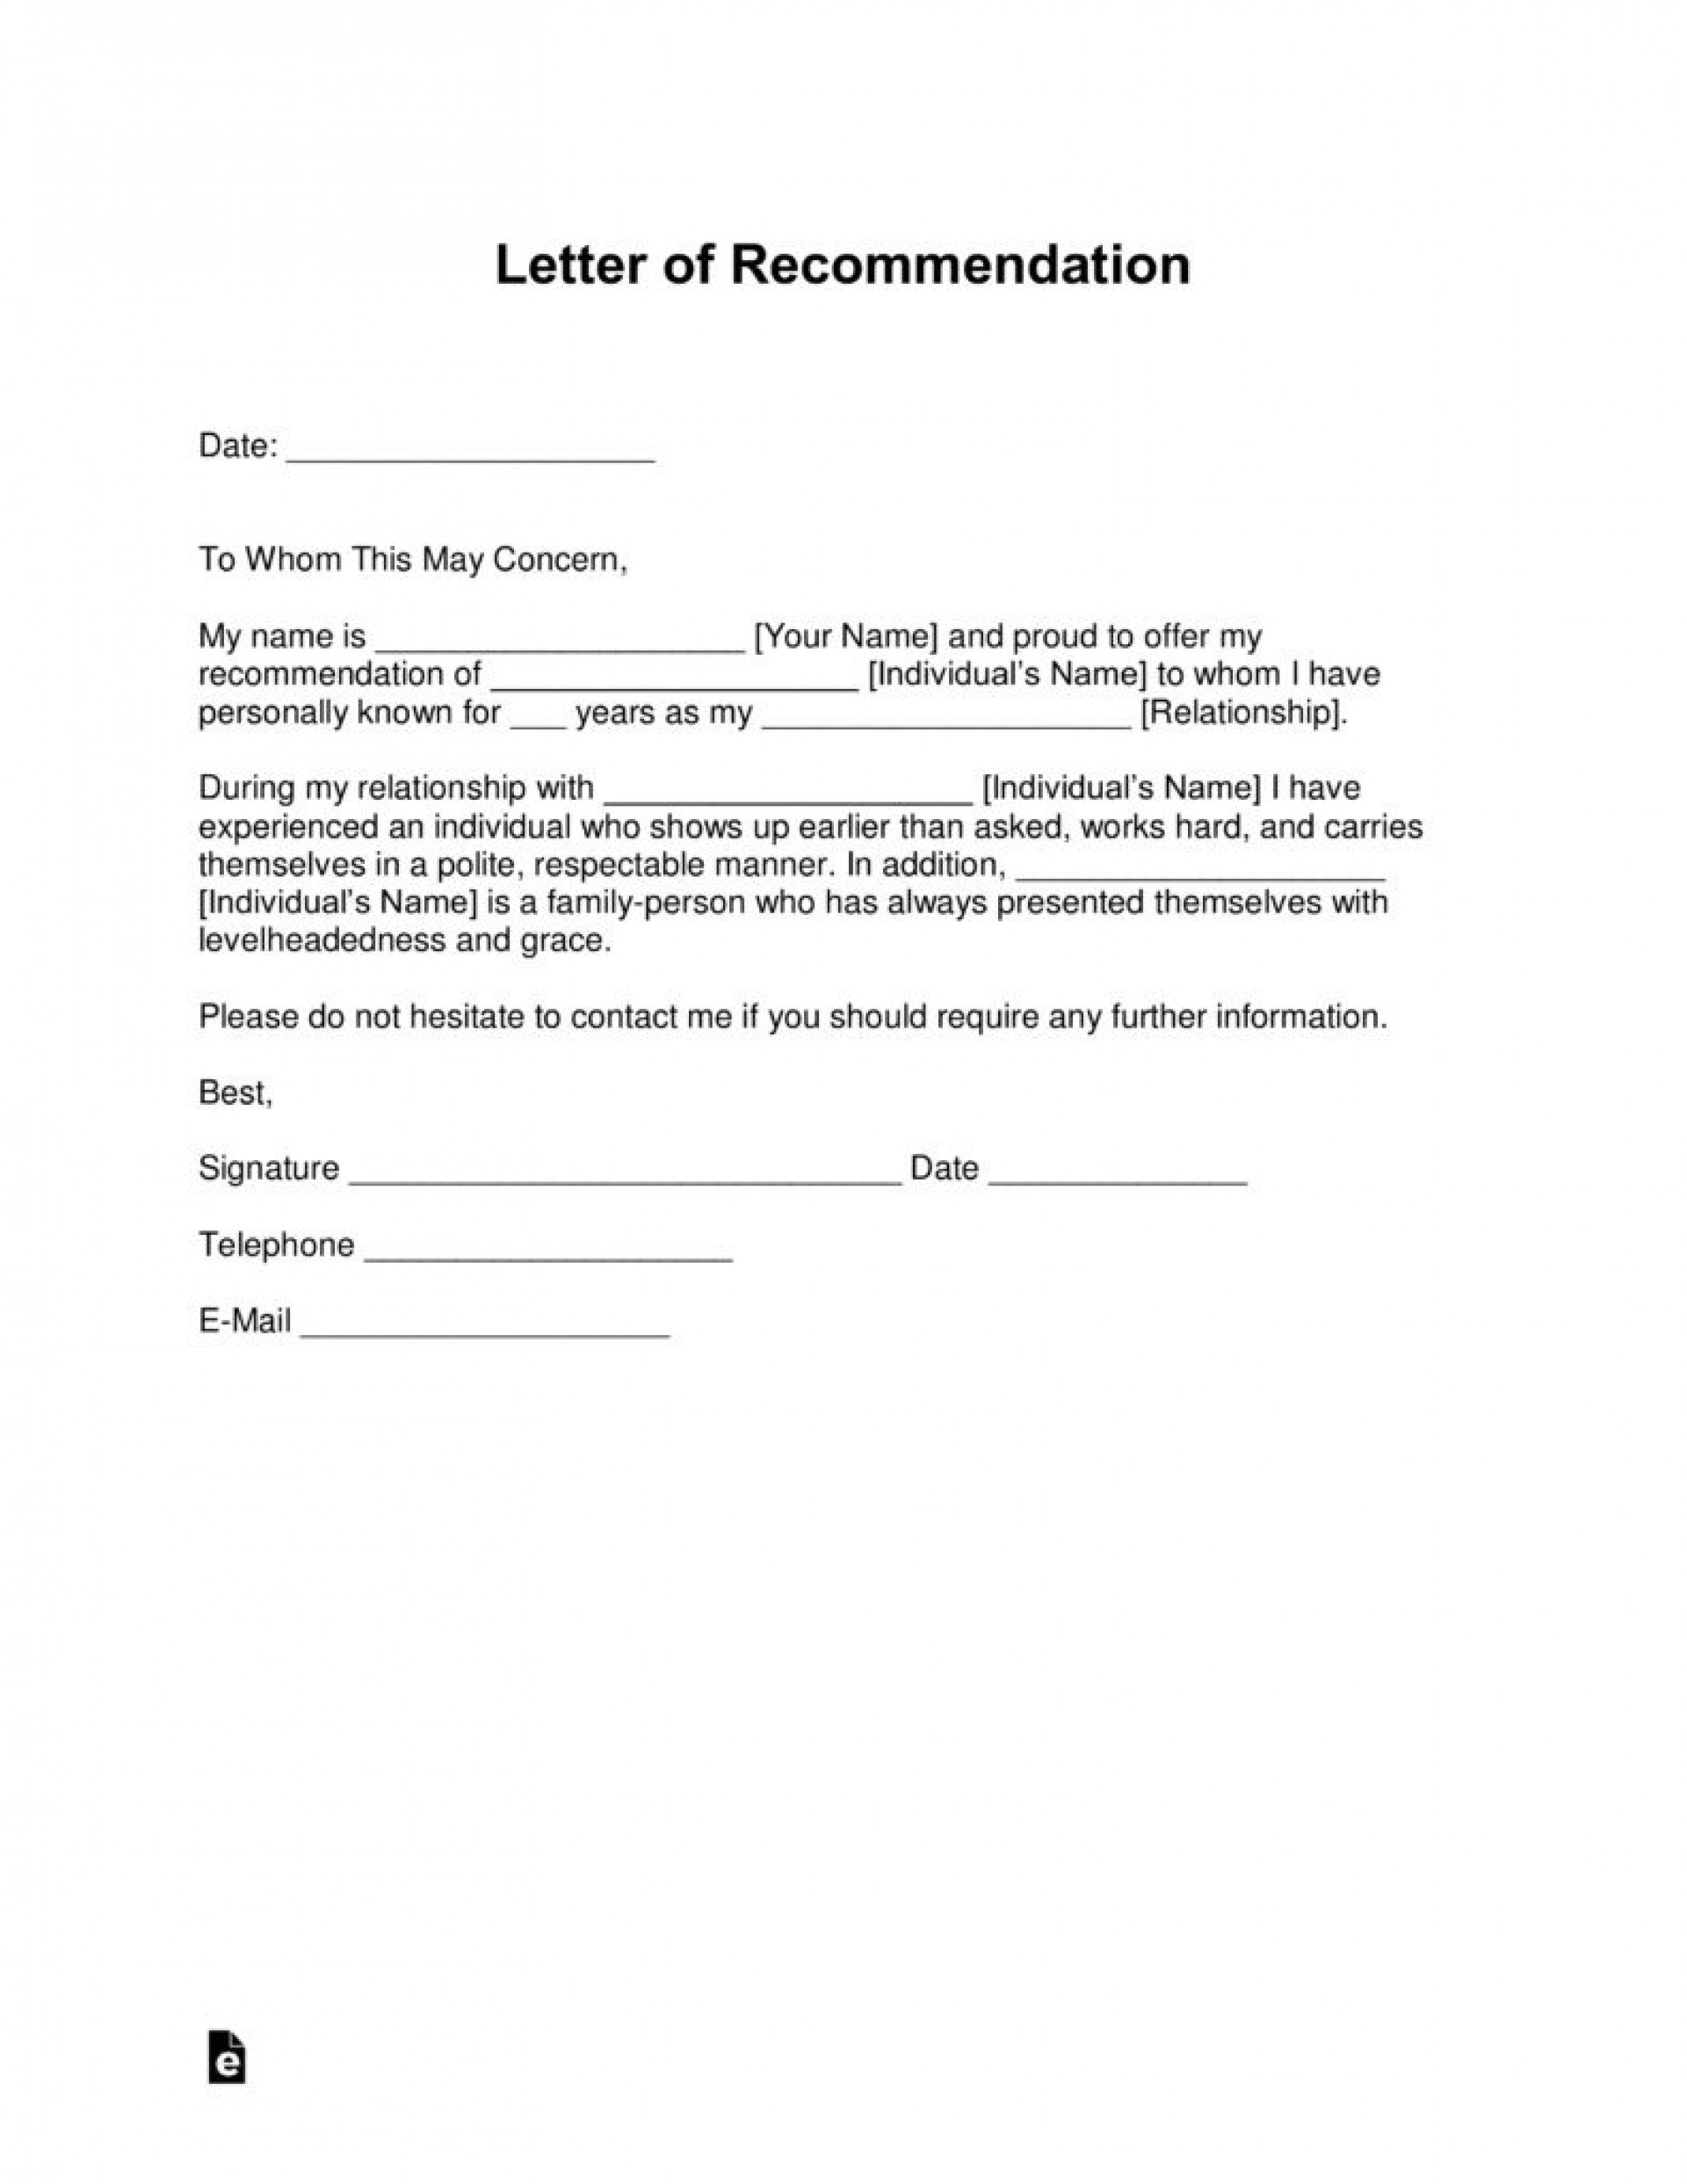 001 Top Letter Of Recommendation Template Word High Definition  General Free Doc1920